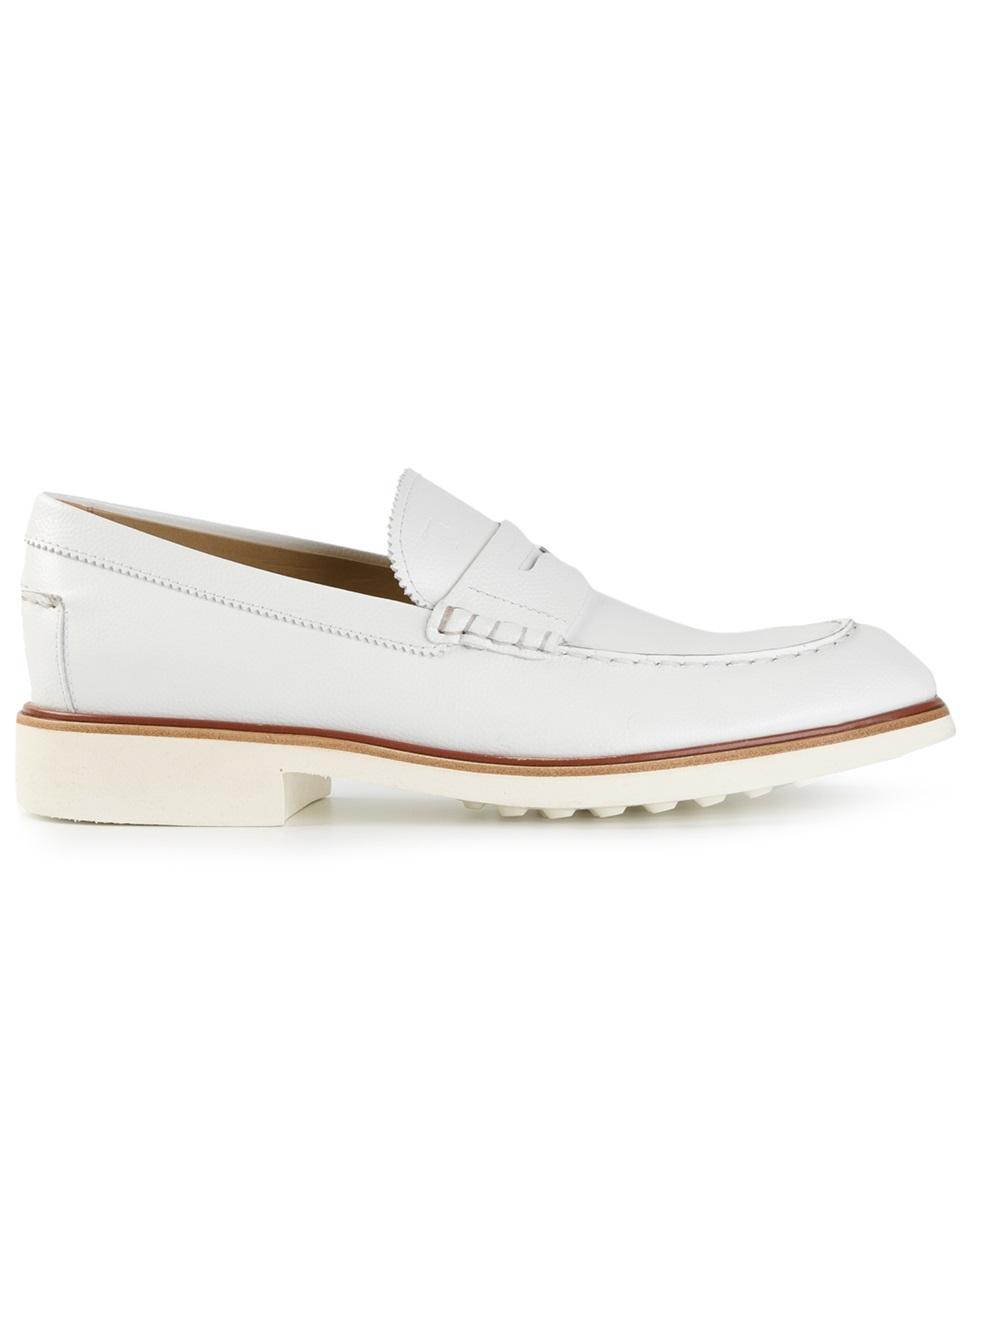 classic loafers - White Tod's PMSwi